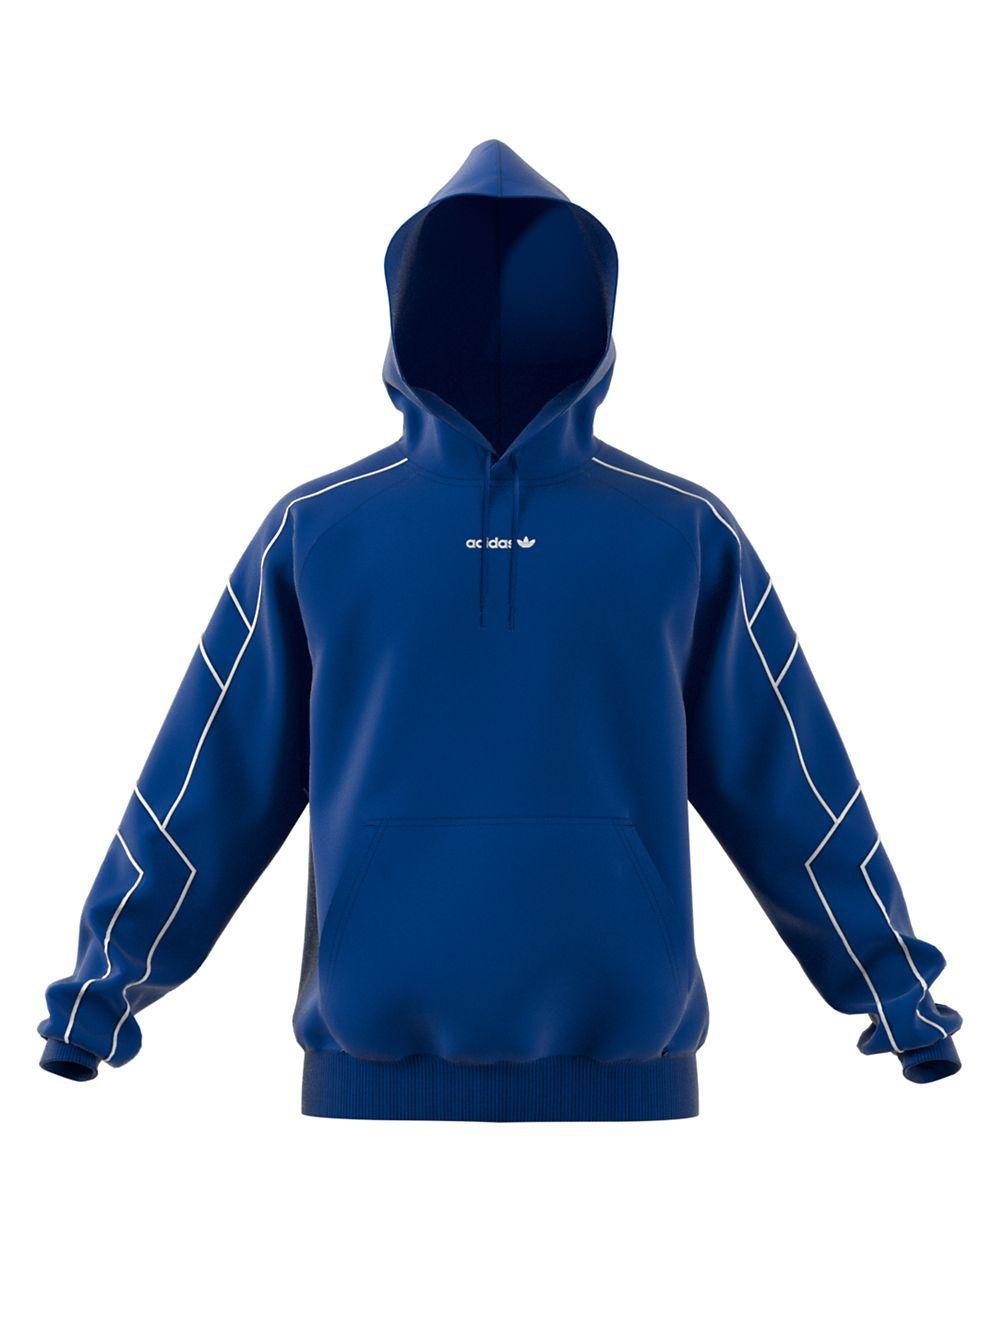 2ec0e8c40a19 Lyst - Adidas Equipment Outline Hoodie in Blue for Men